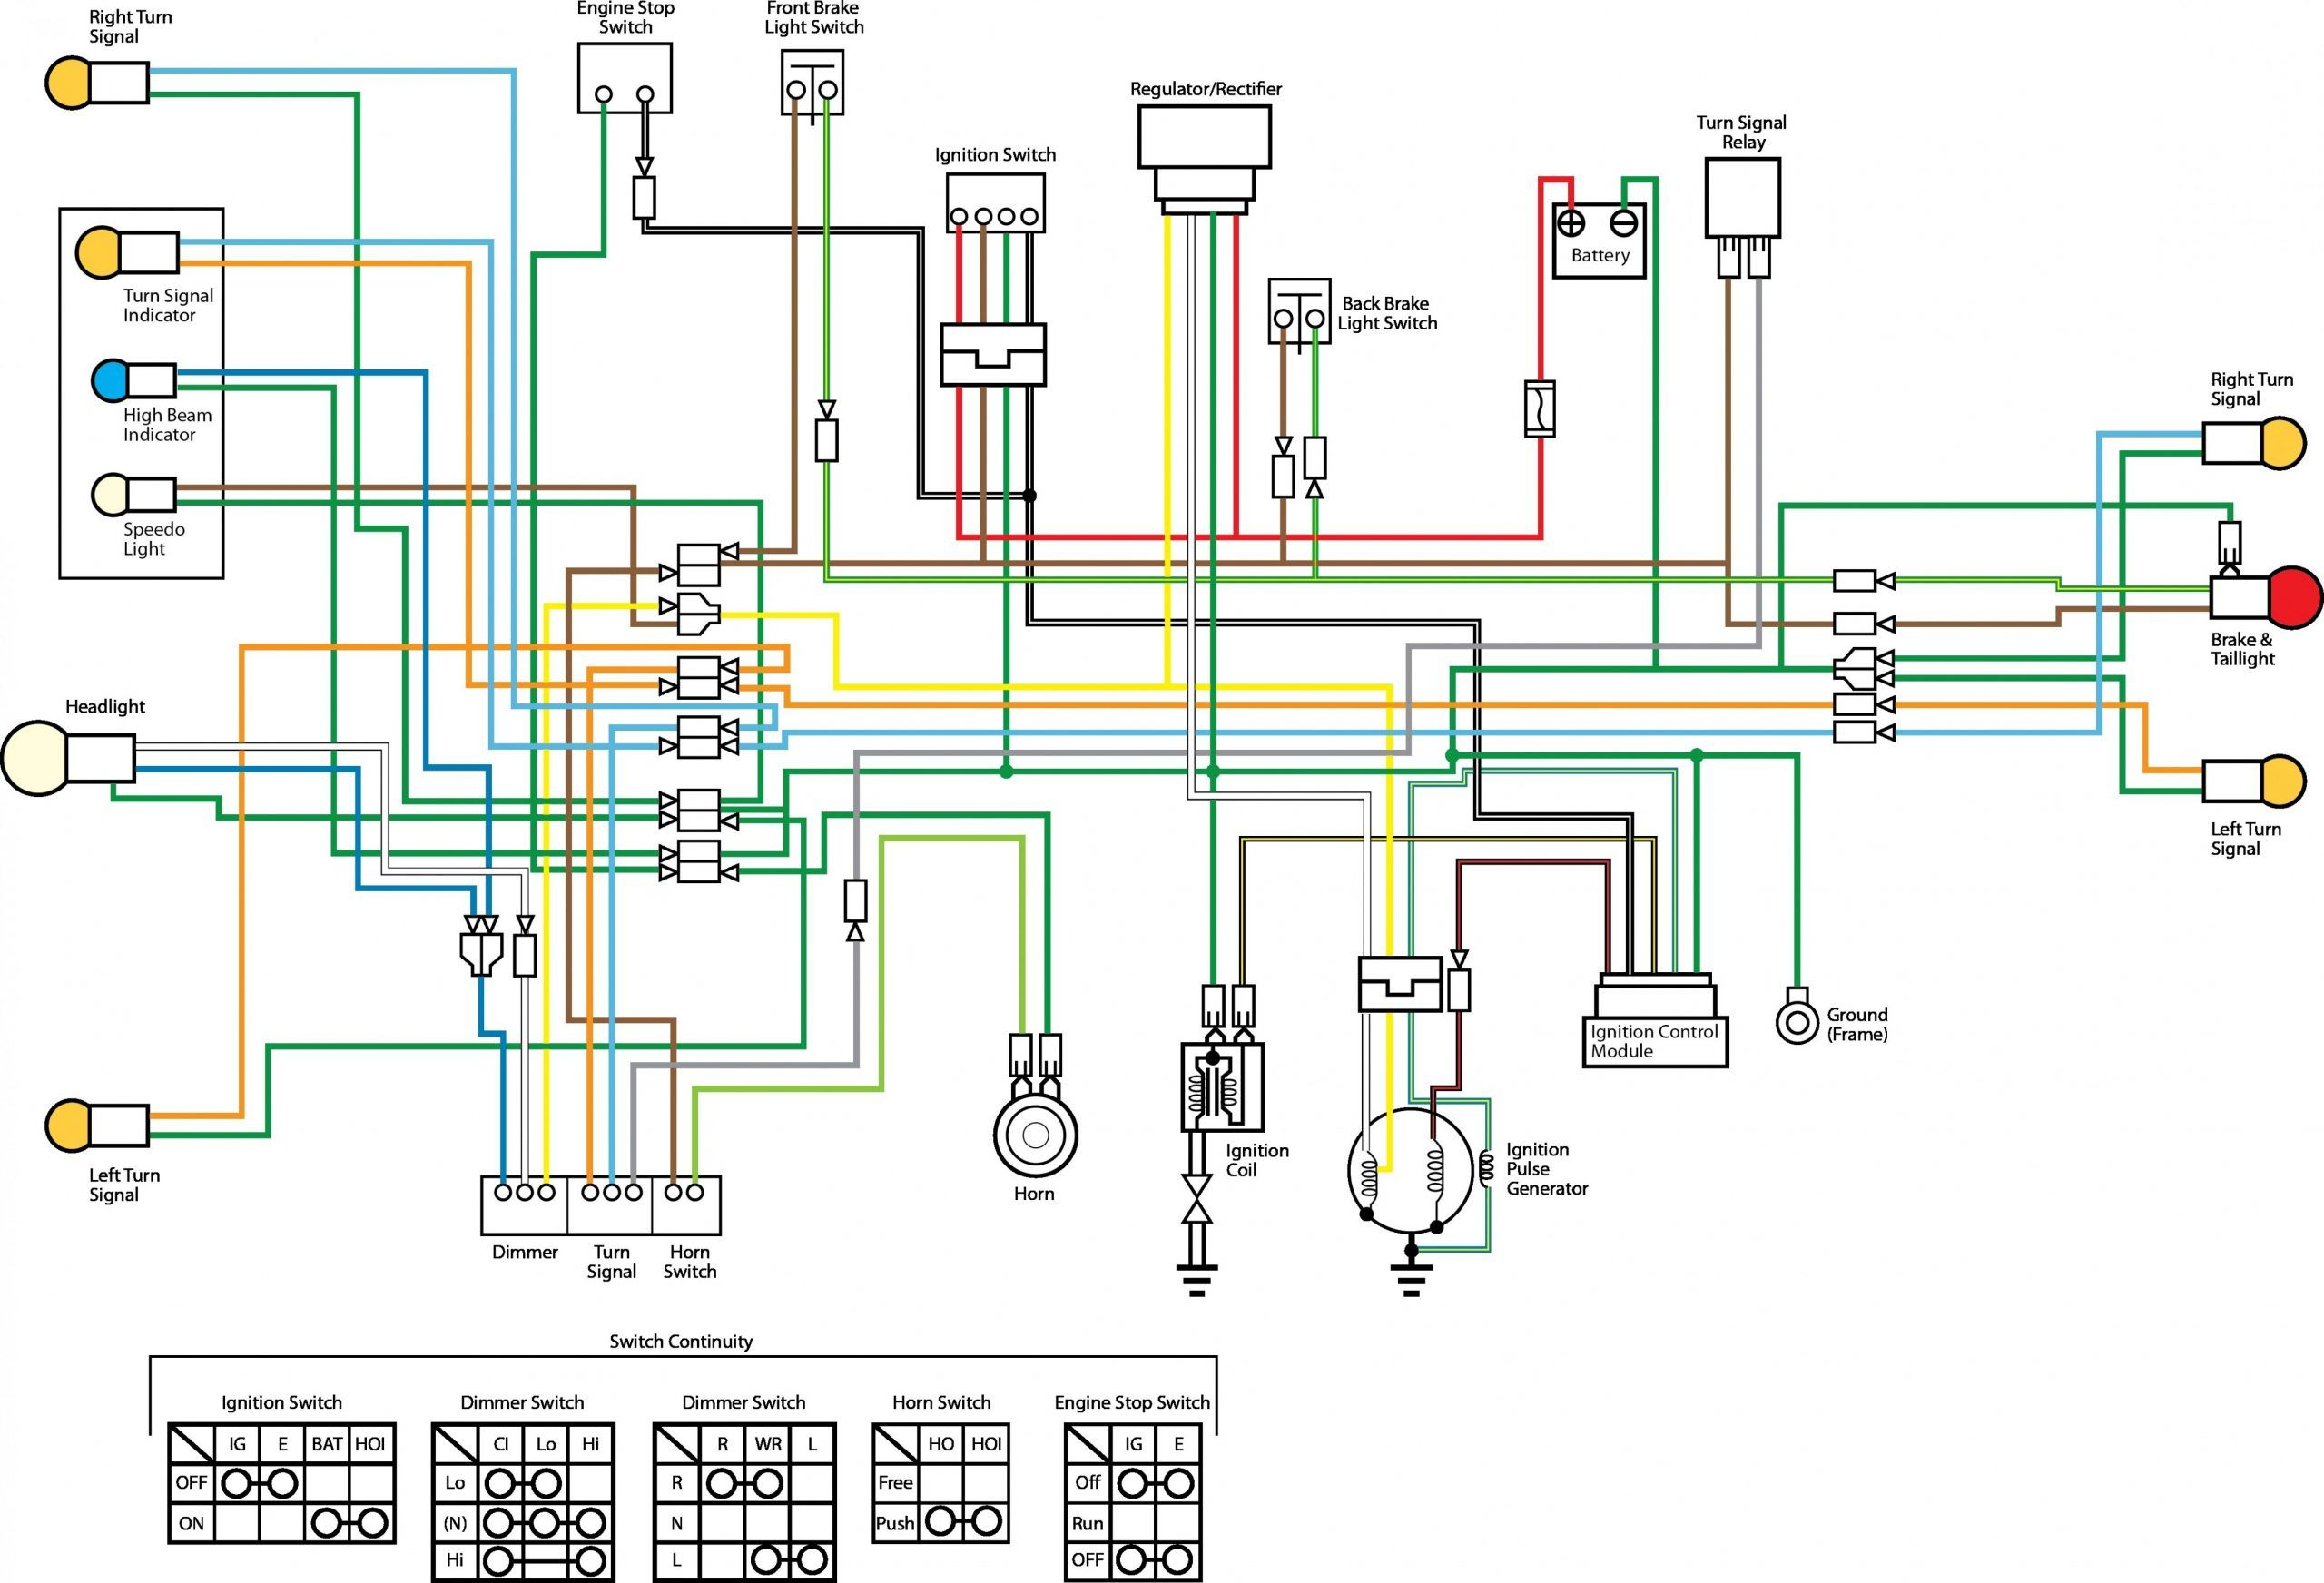 Gy5 5cc Engine Diagram Wiring Motorcycle Wiring Electrical Wiring Diagram Electrical Diagram